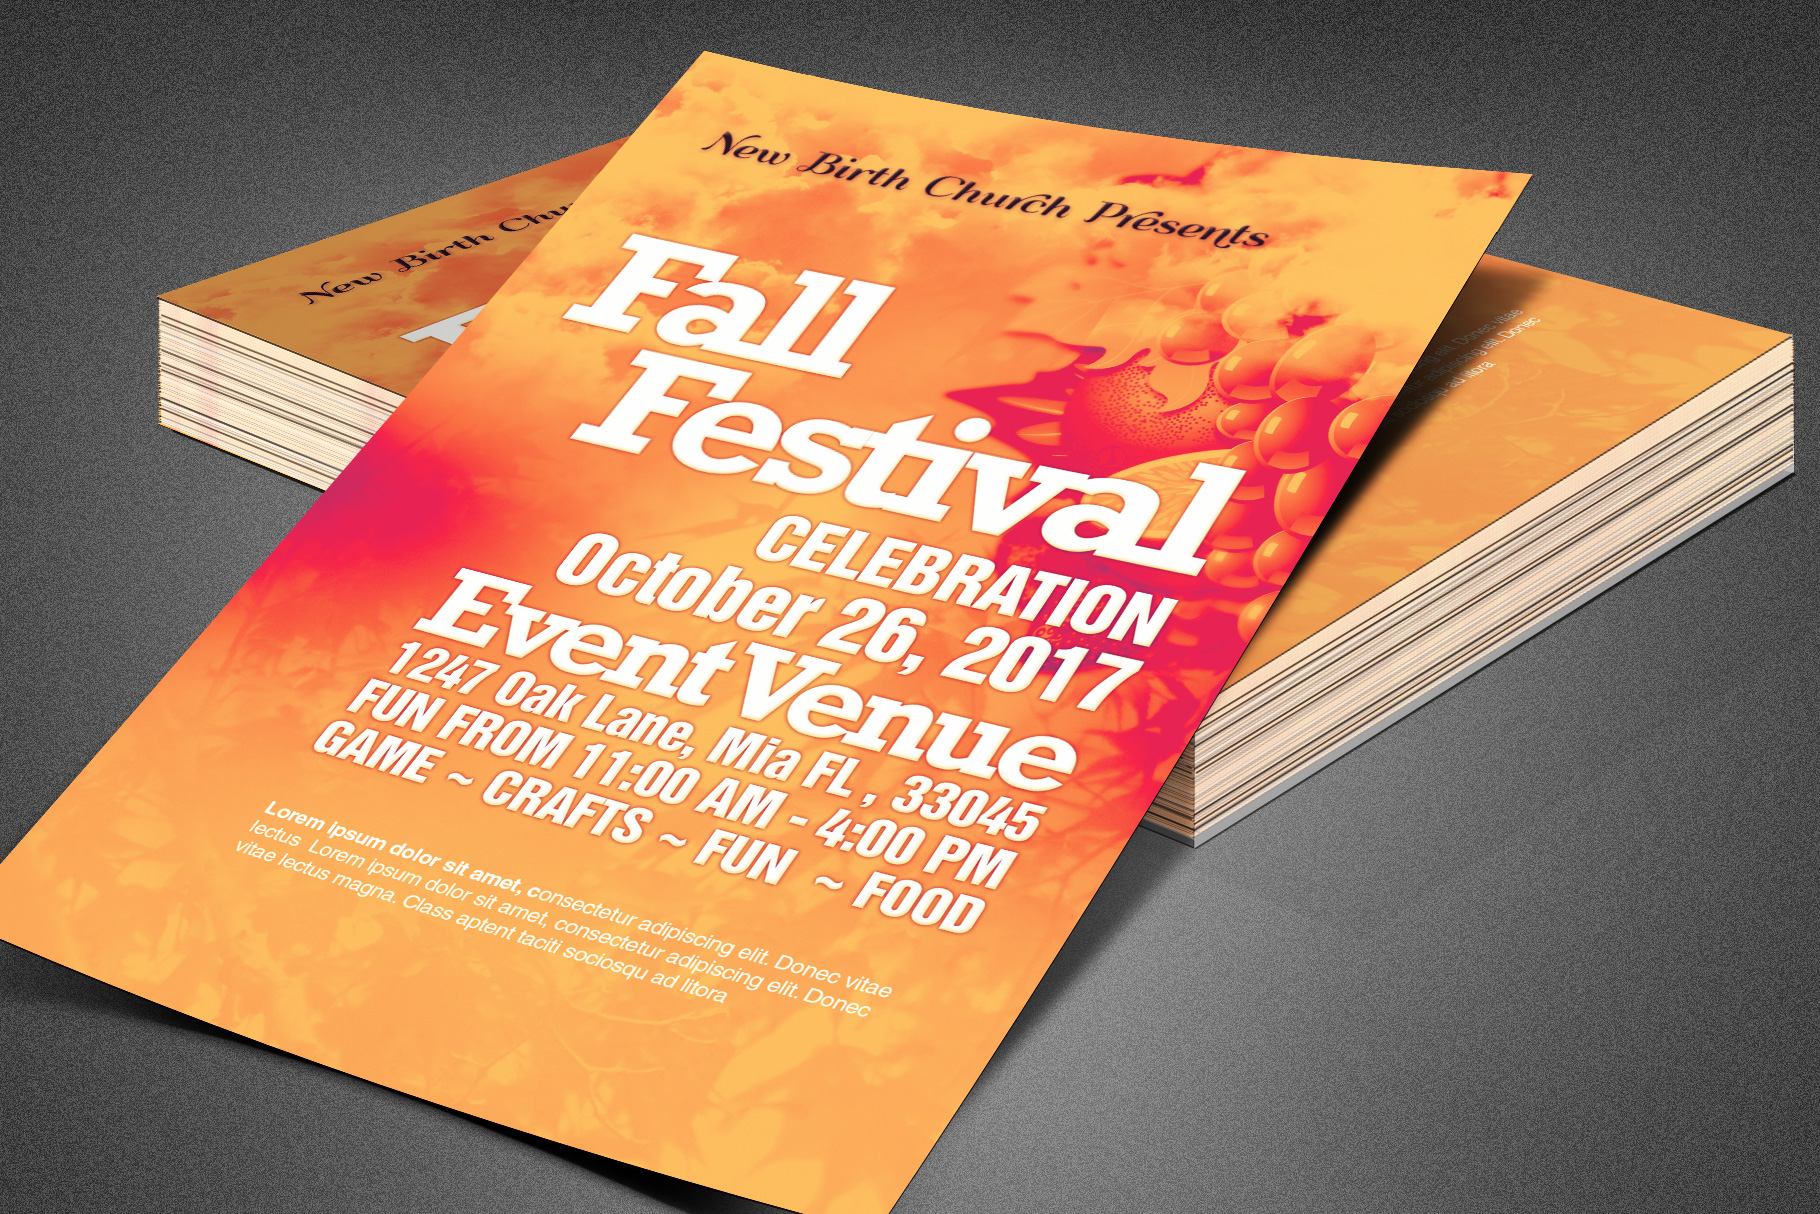 Fall Festival Church Flyer Template example image 2